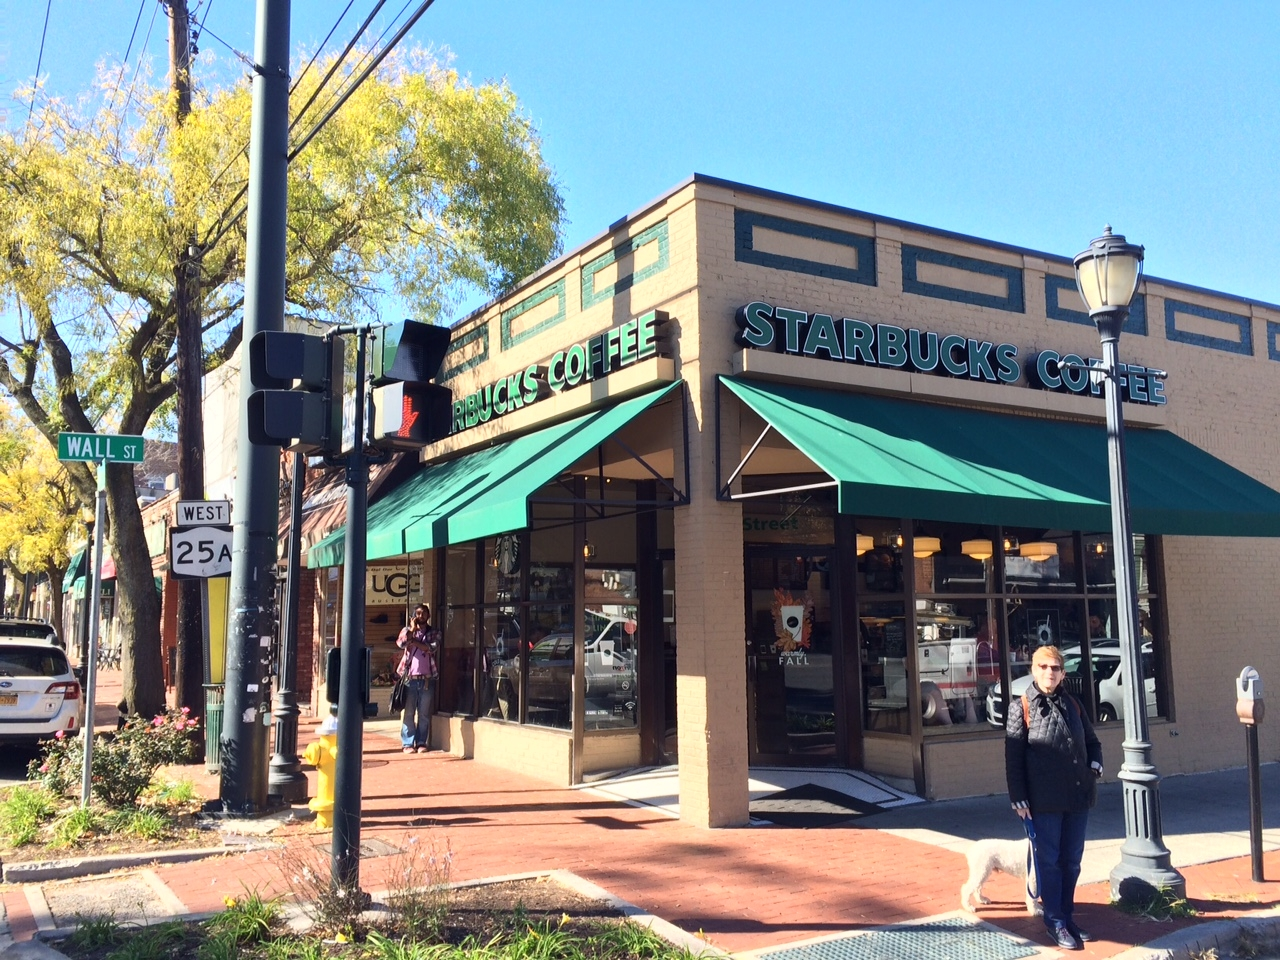 The Starbucks at 1 Wall St. in Huntington village is one of two locations in the Town of Huntington to apply for a beer and wine license.